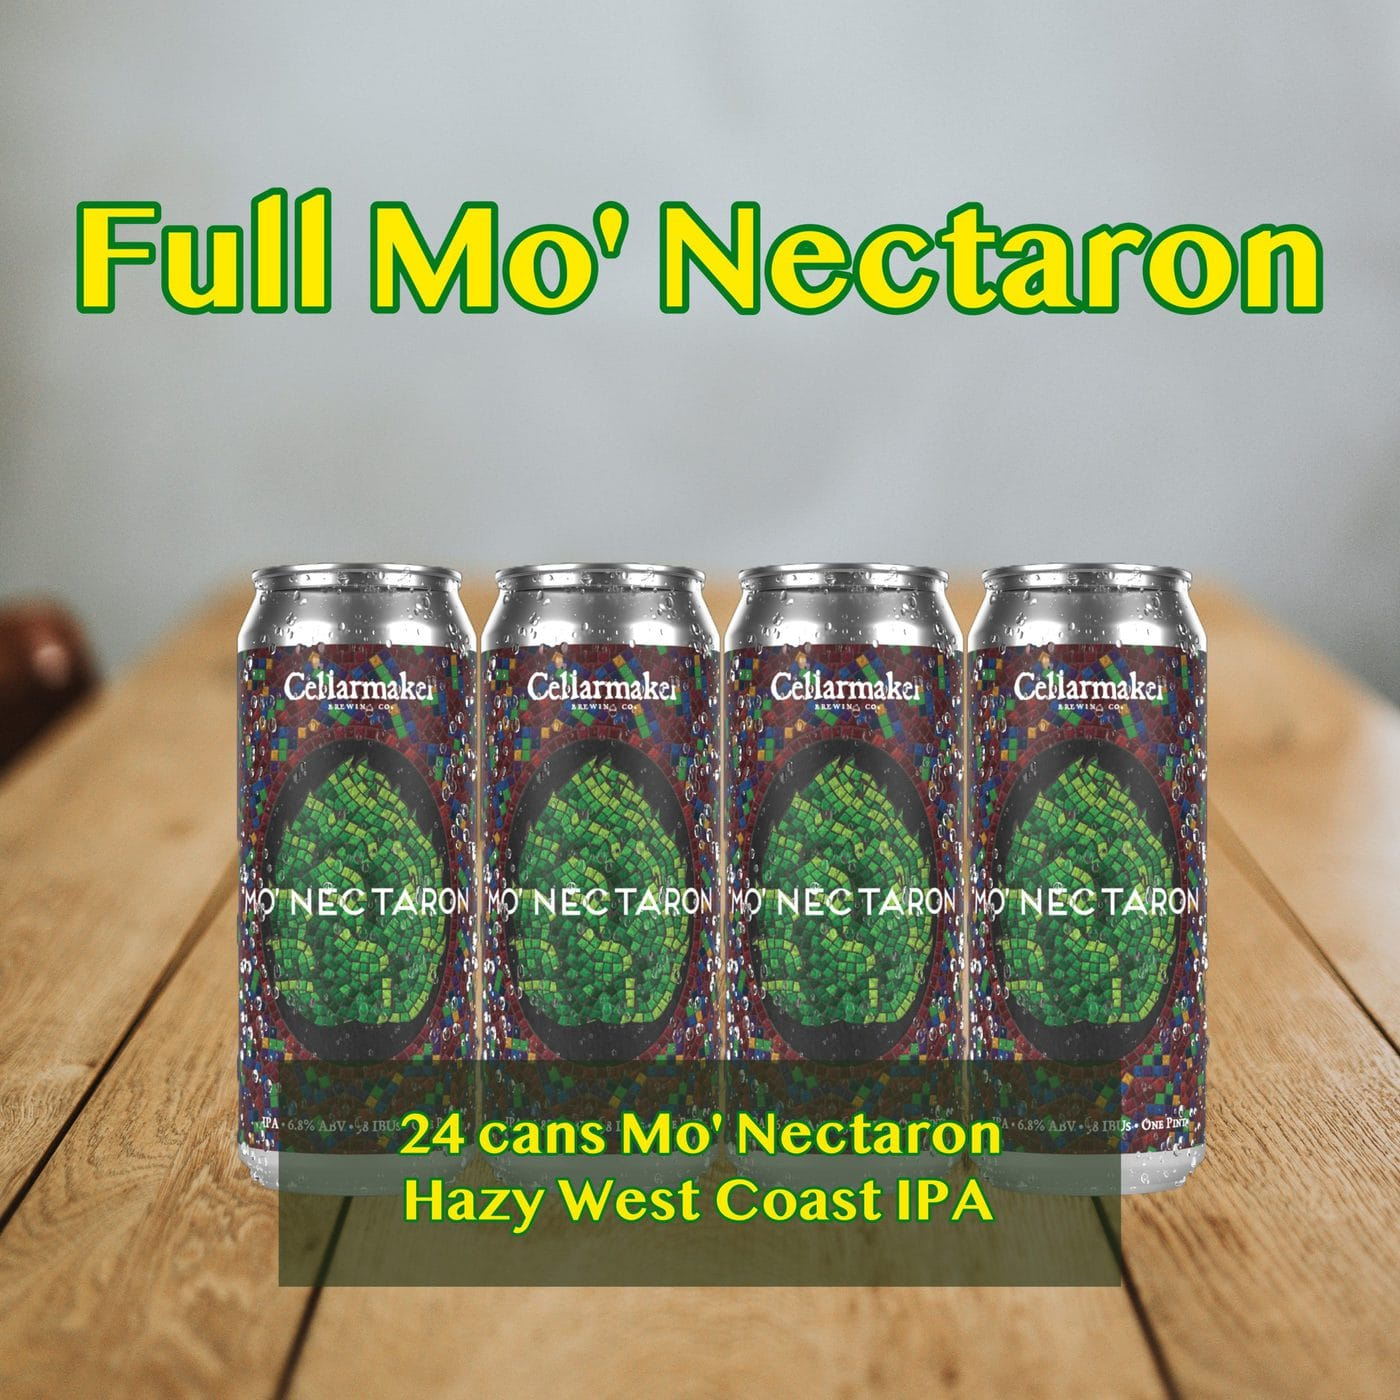 FULL CASE 24 CANS Mo' Nectaron NEW HAZY IPA – Shipping Out Tuesday 3/2 For Next Day Delivery*